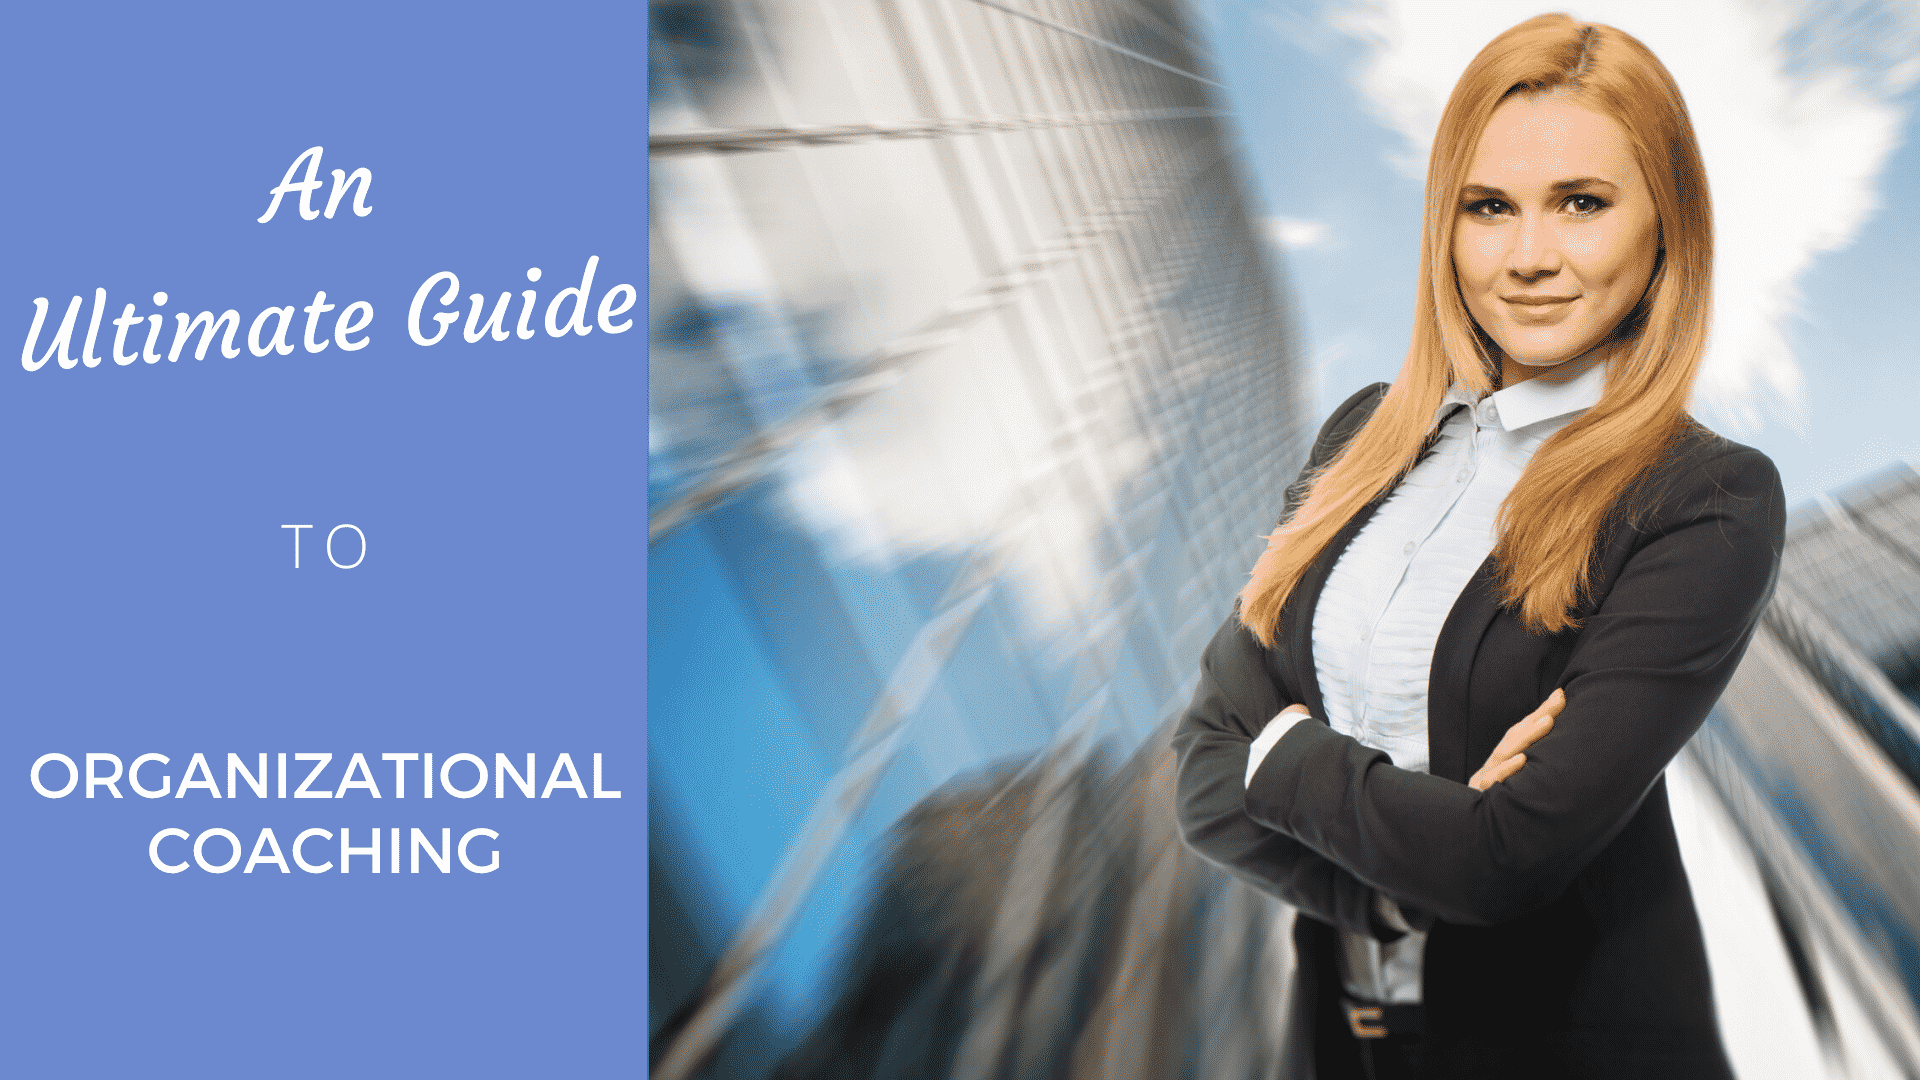 An Ultimate Guide to Organizational Coaching organizational coach